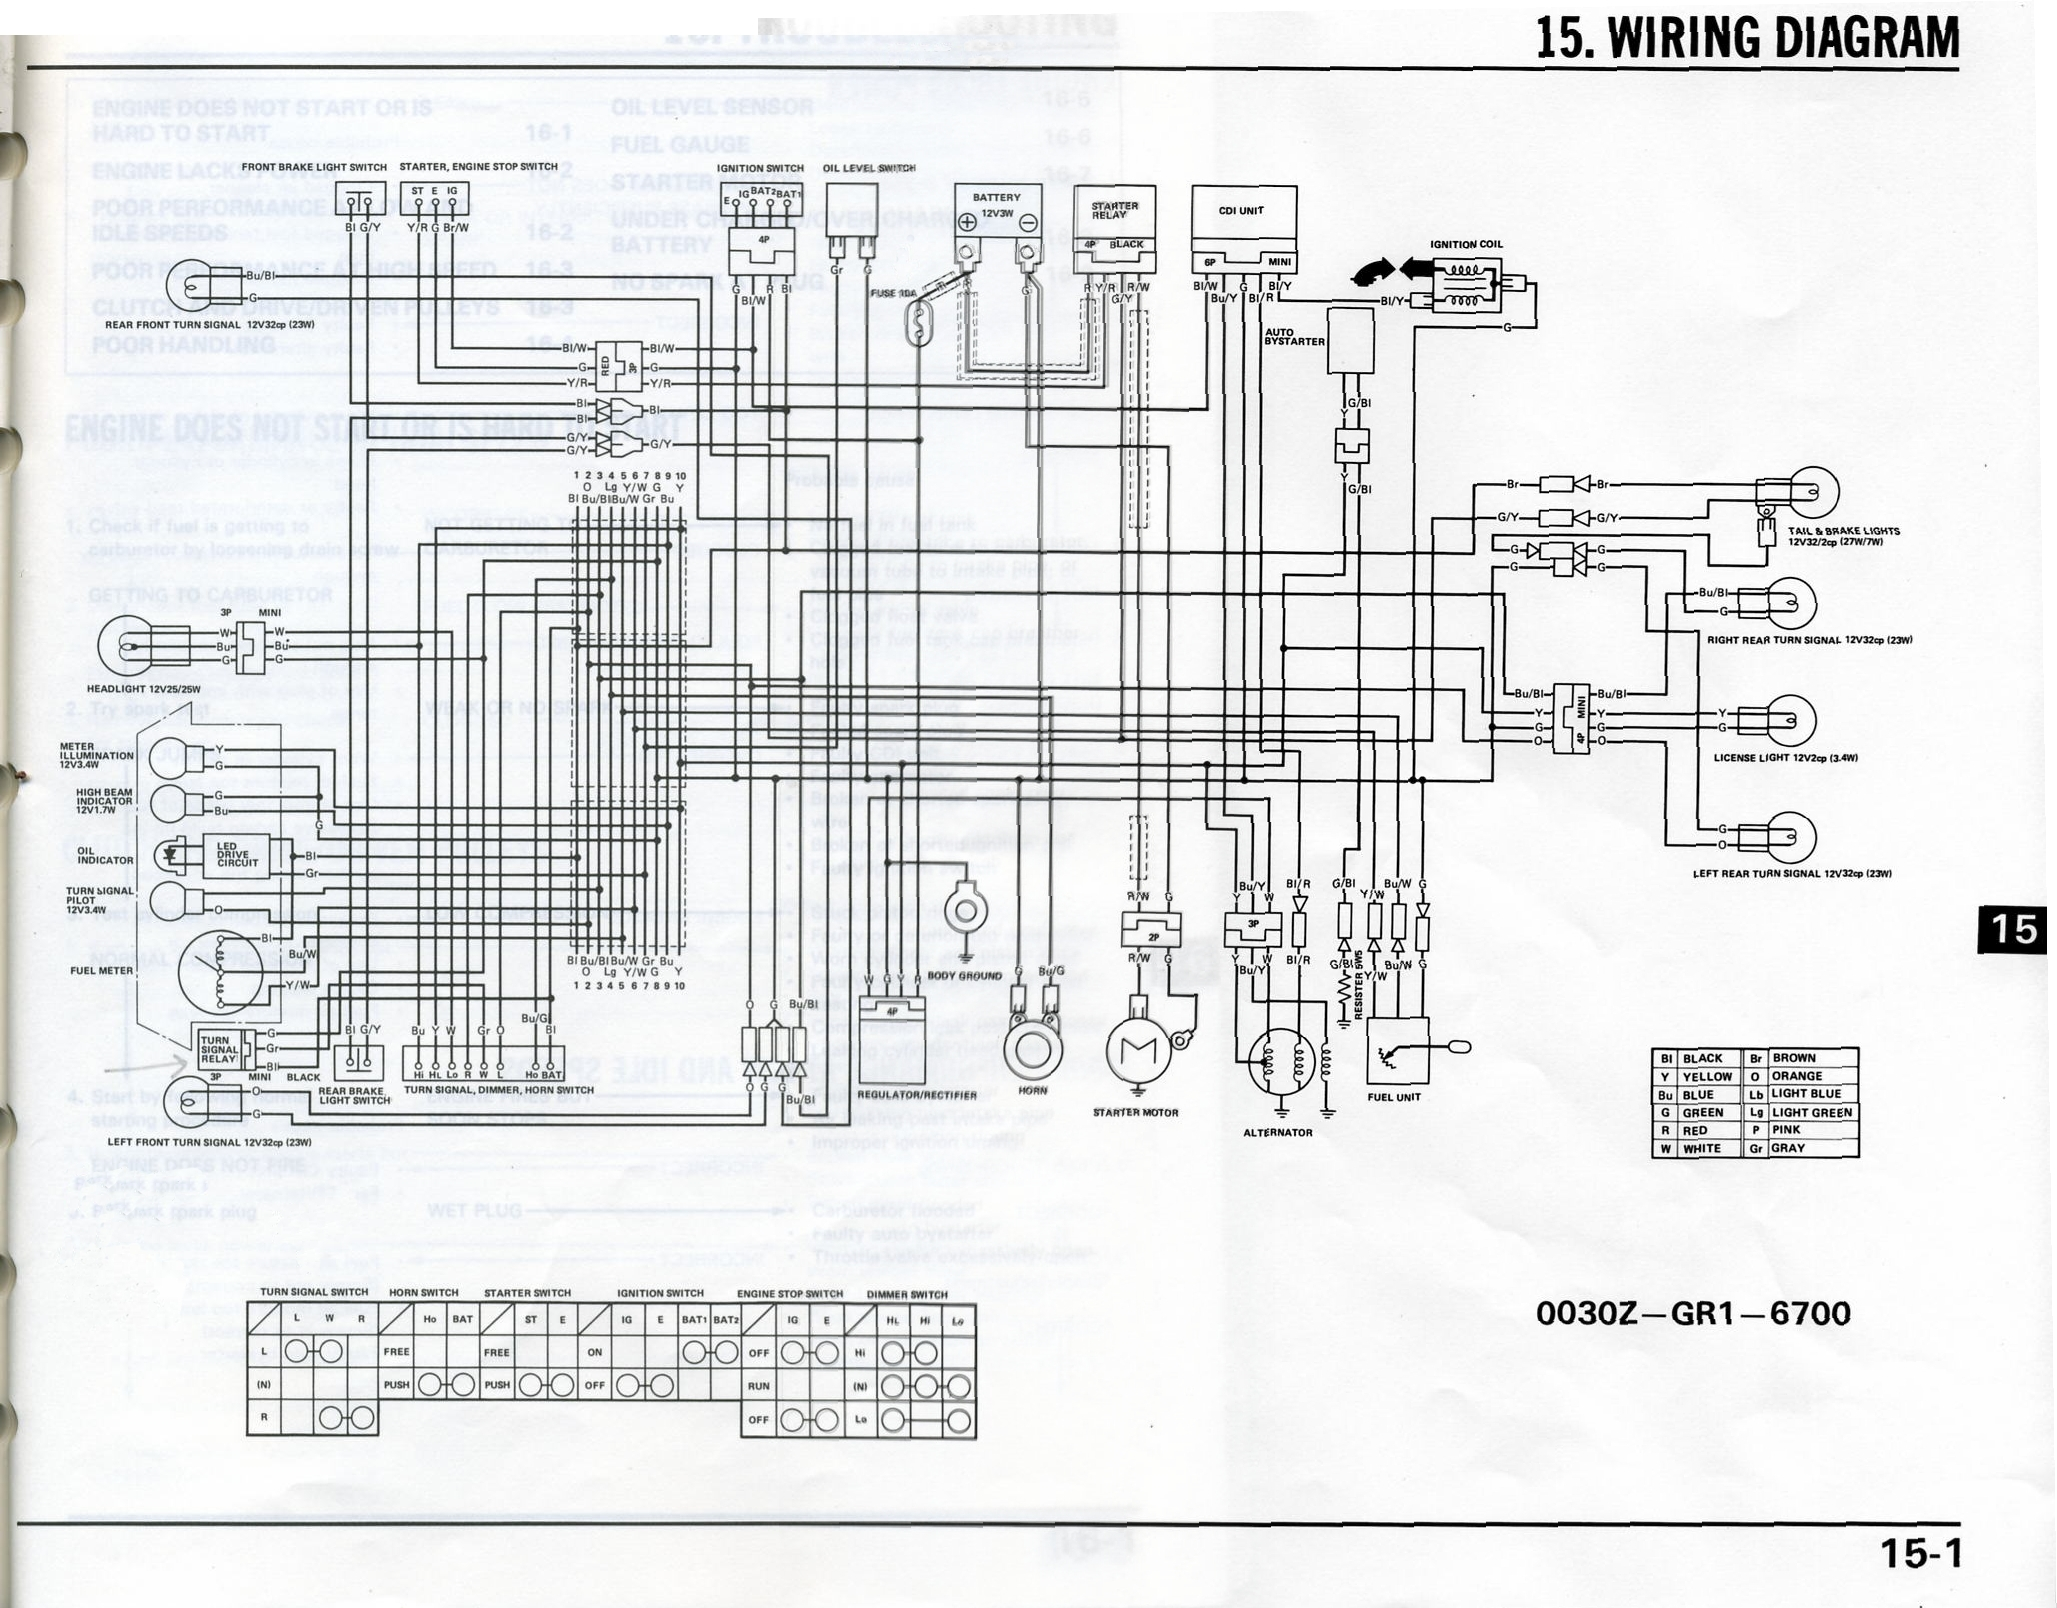 Honda Elite (SE50) Service Manual, 1987